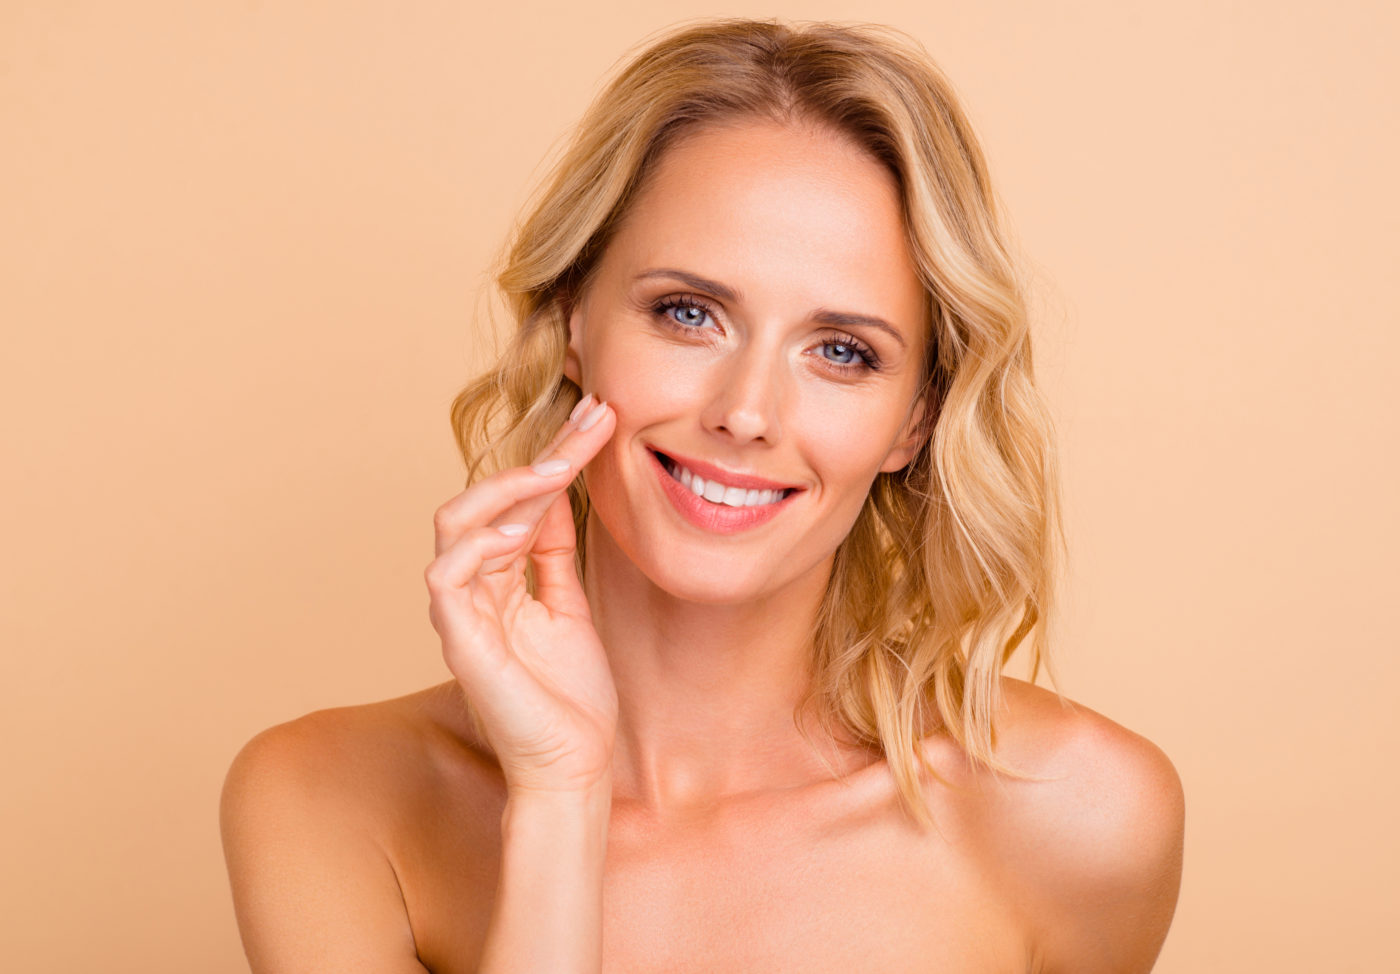 Salon spa therapy treatment concept. Close-up portrait of attractive cheerful wavy-haired lady with flawless smooth pure clean clear skin applying cream on cheek isolated on beige background.